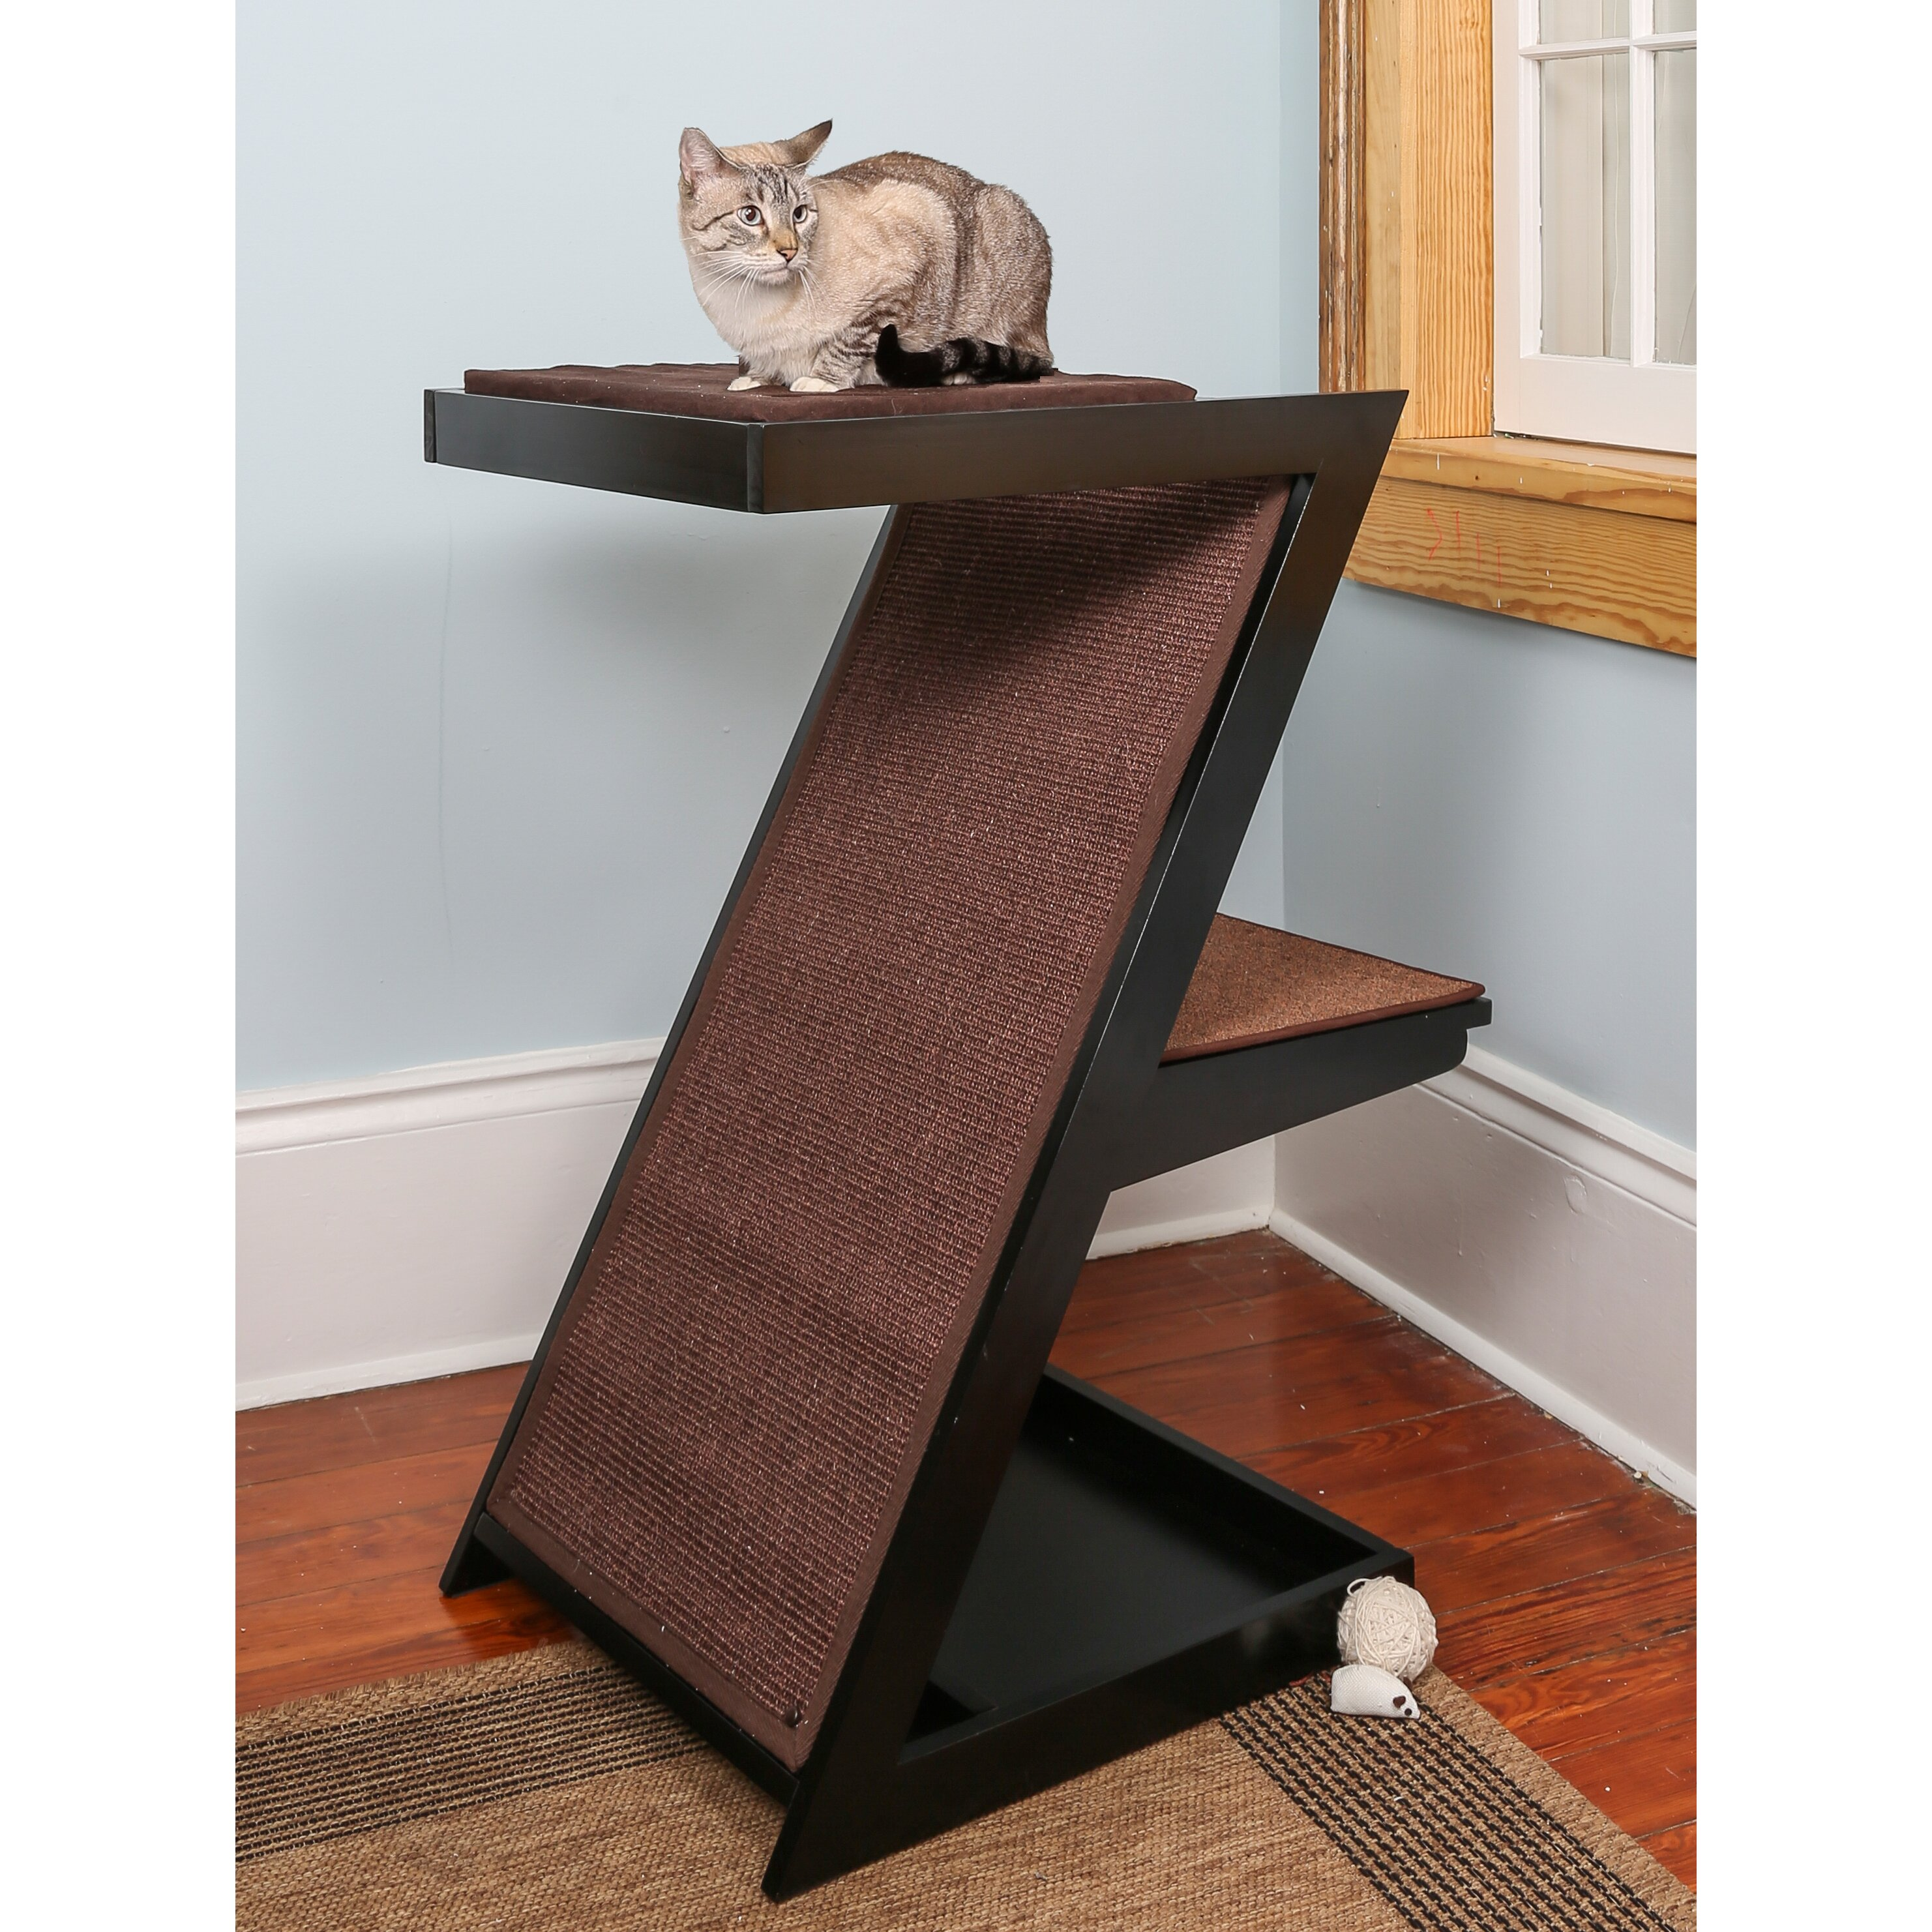 The Refined Feline Zen Cat Scratching Post